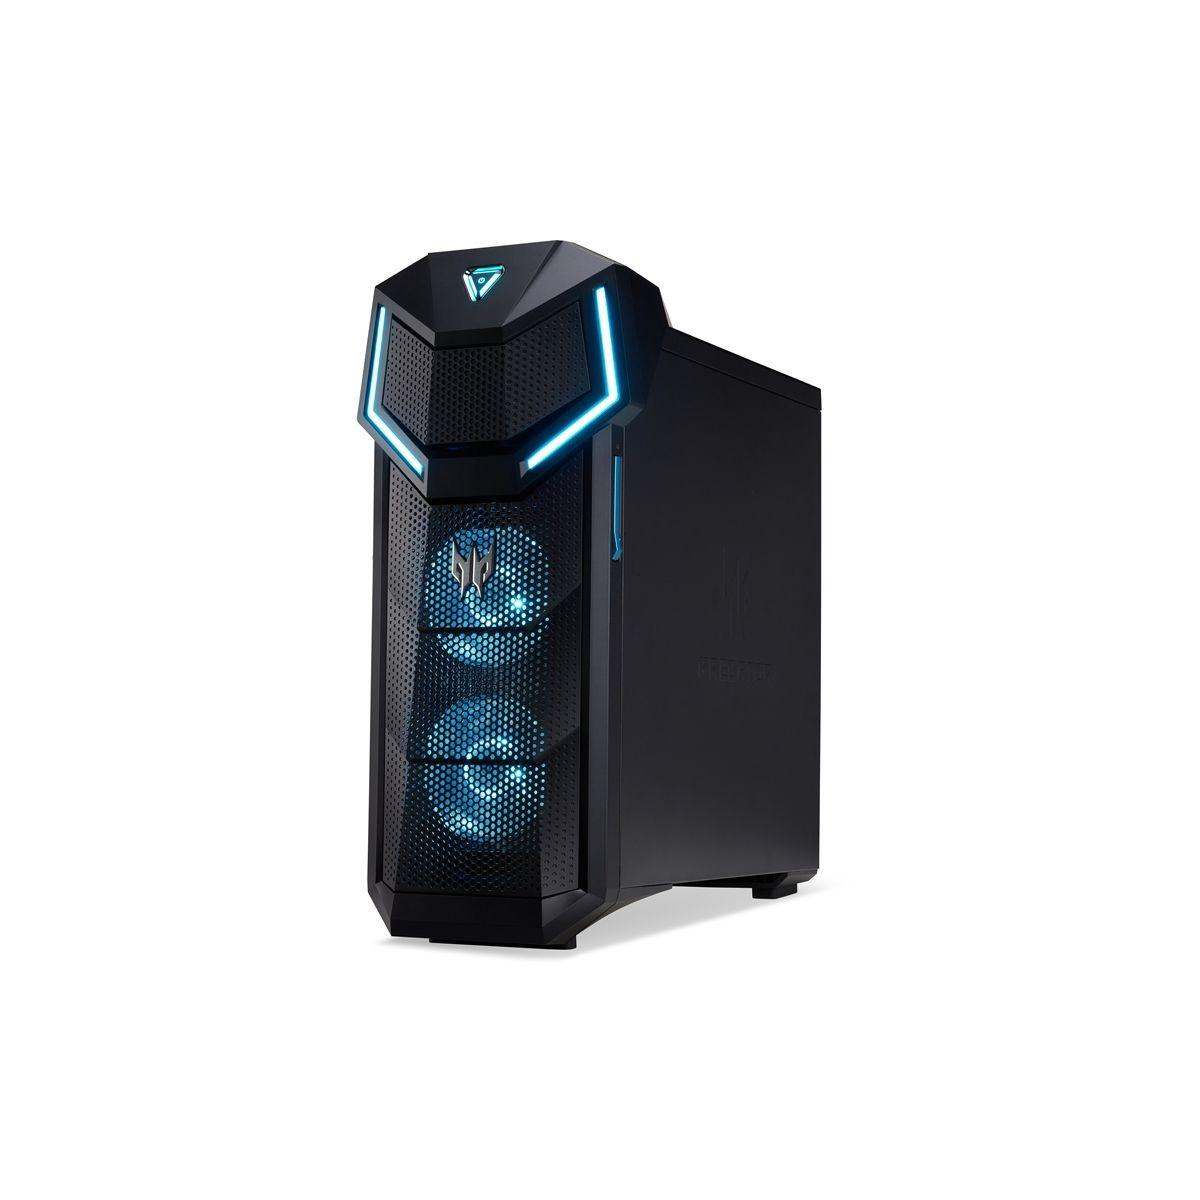 Pc gamer acer predator po5-610-006